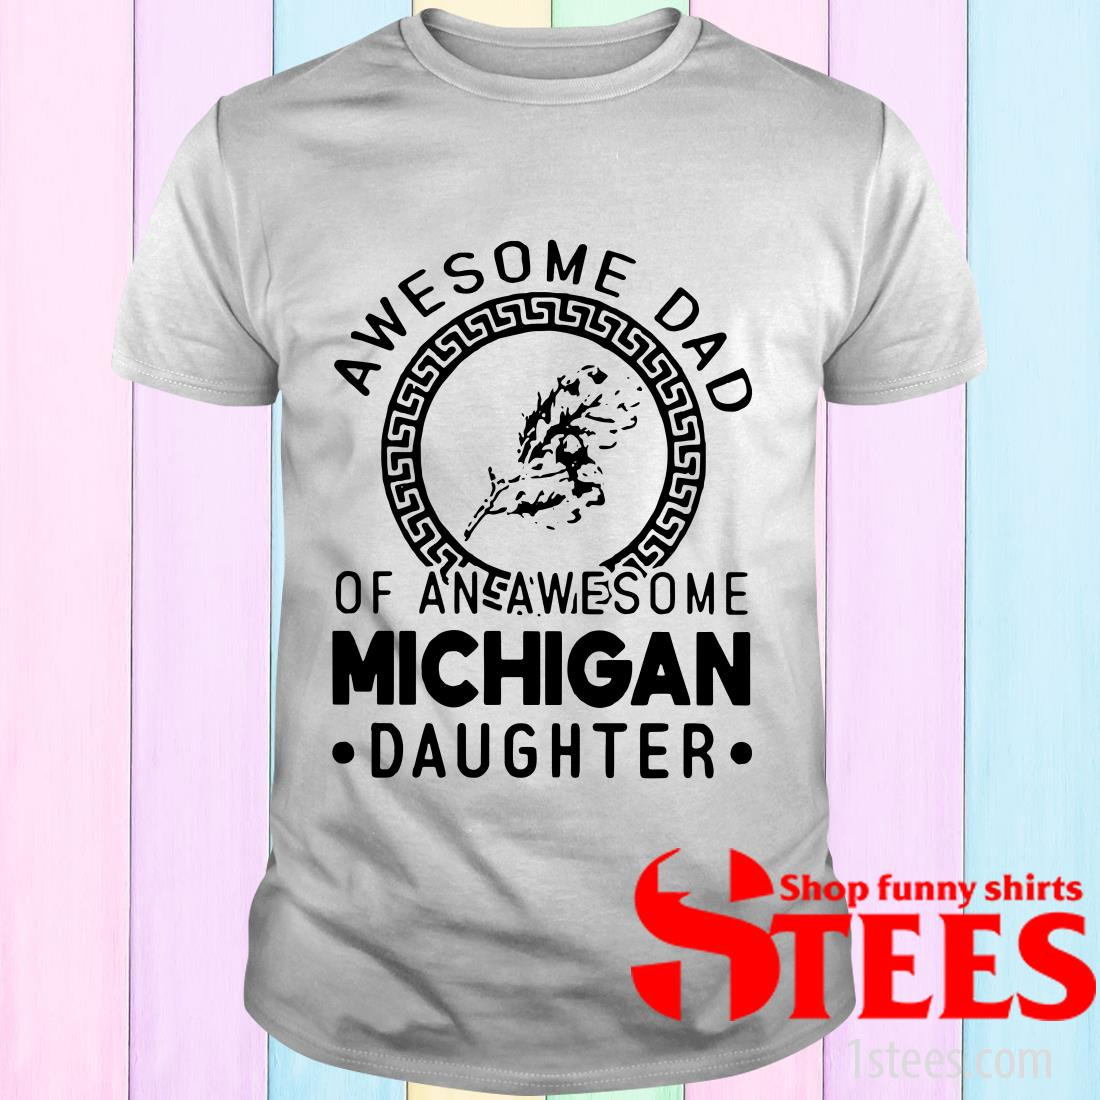 Awesome Dad Of An Awesome Michigan Daughter T-Shirt